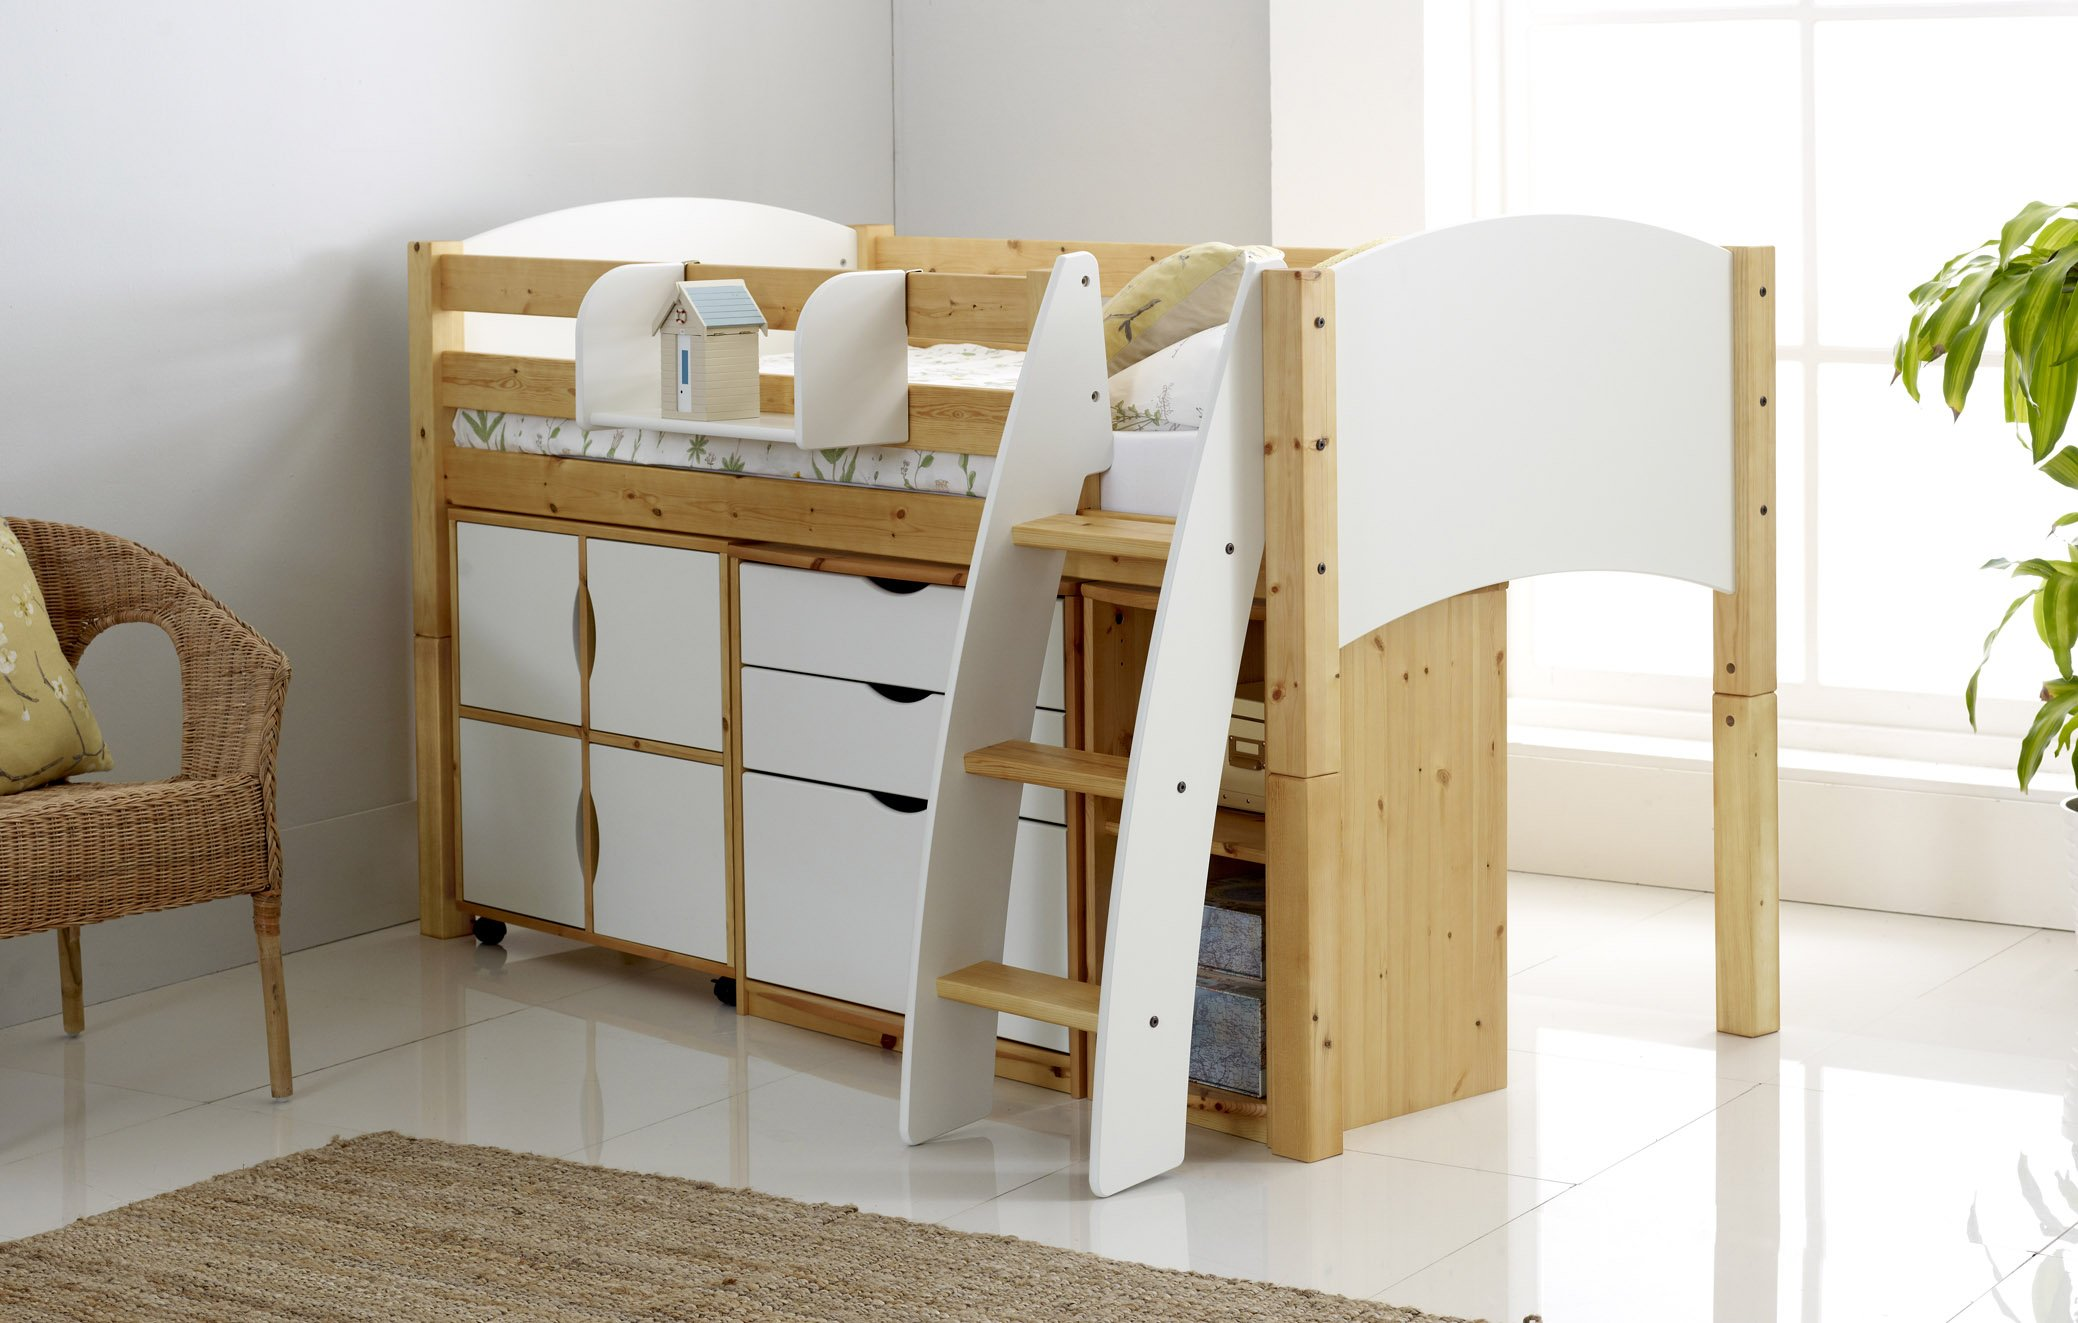 Childrens Kids 3 Tier Toy Bedroom Storage Shelf Unit 8: Honey Mid Sleeper Cabin Bed With Drawers, Cupboards, Shelves